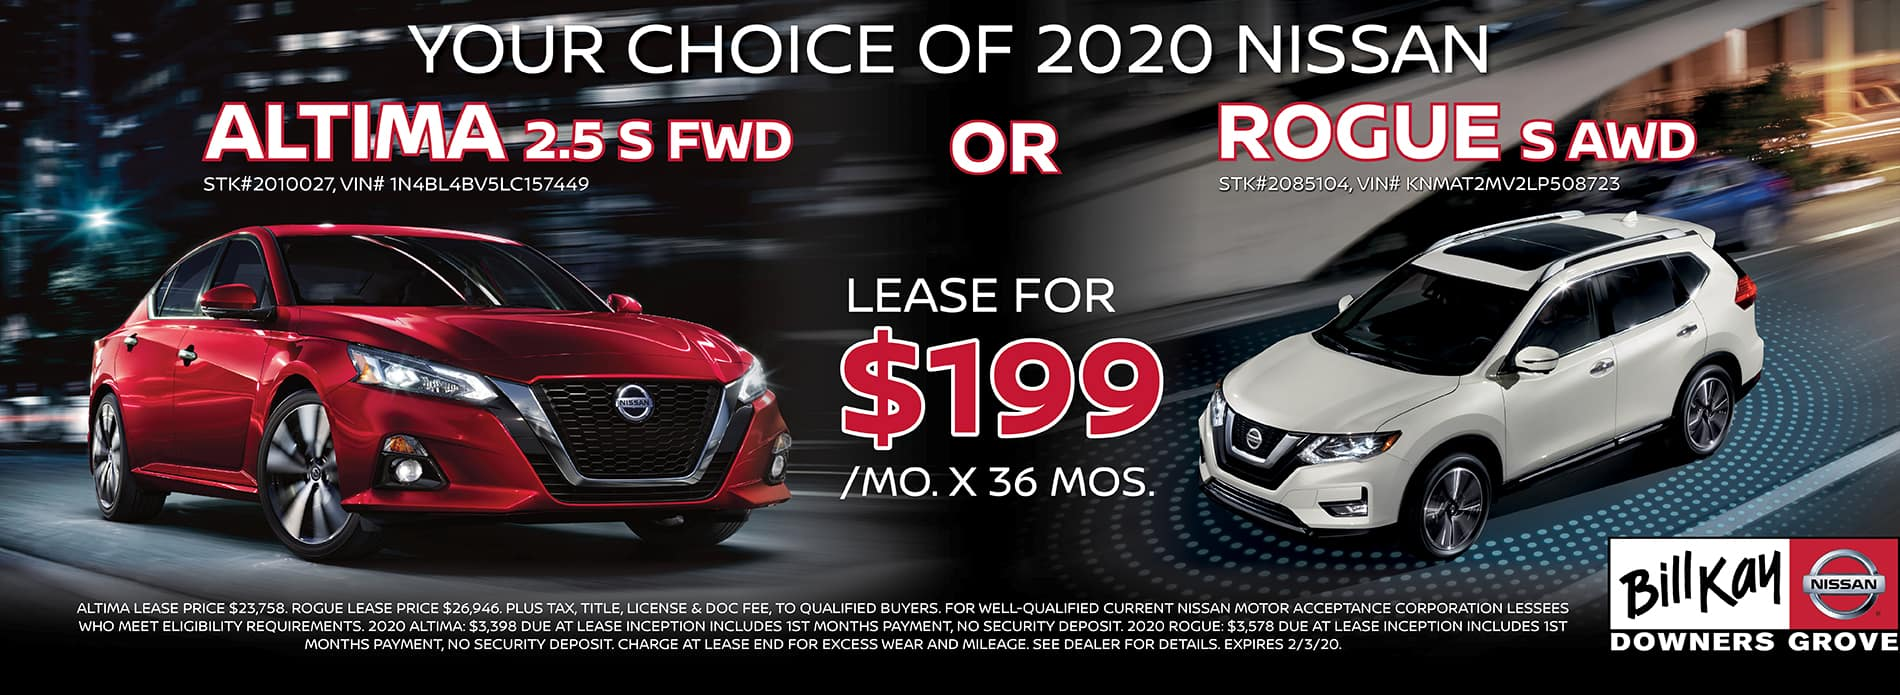 Altima and Rogue Lease Deal